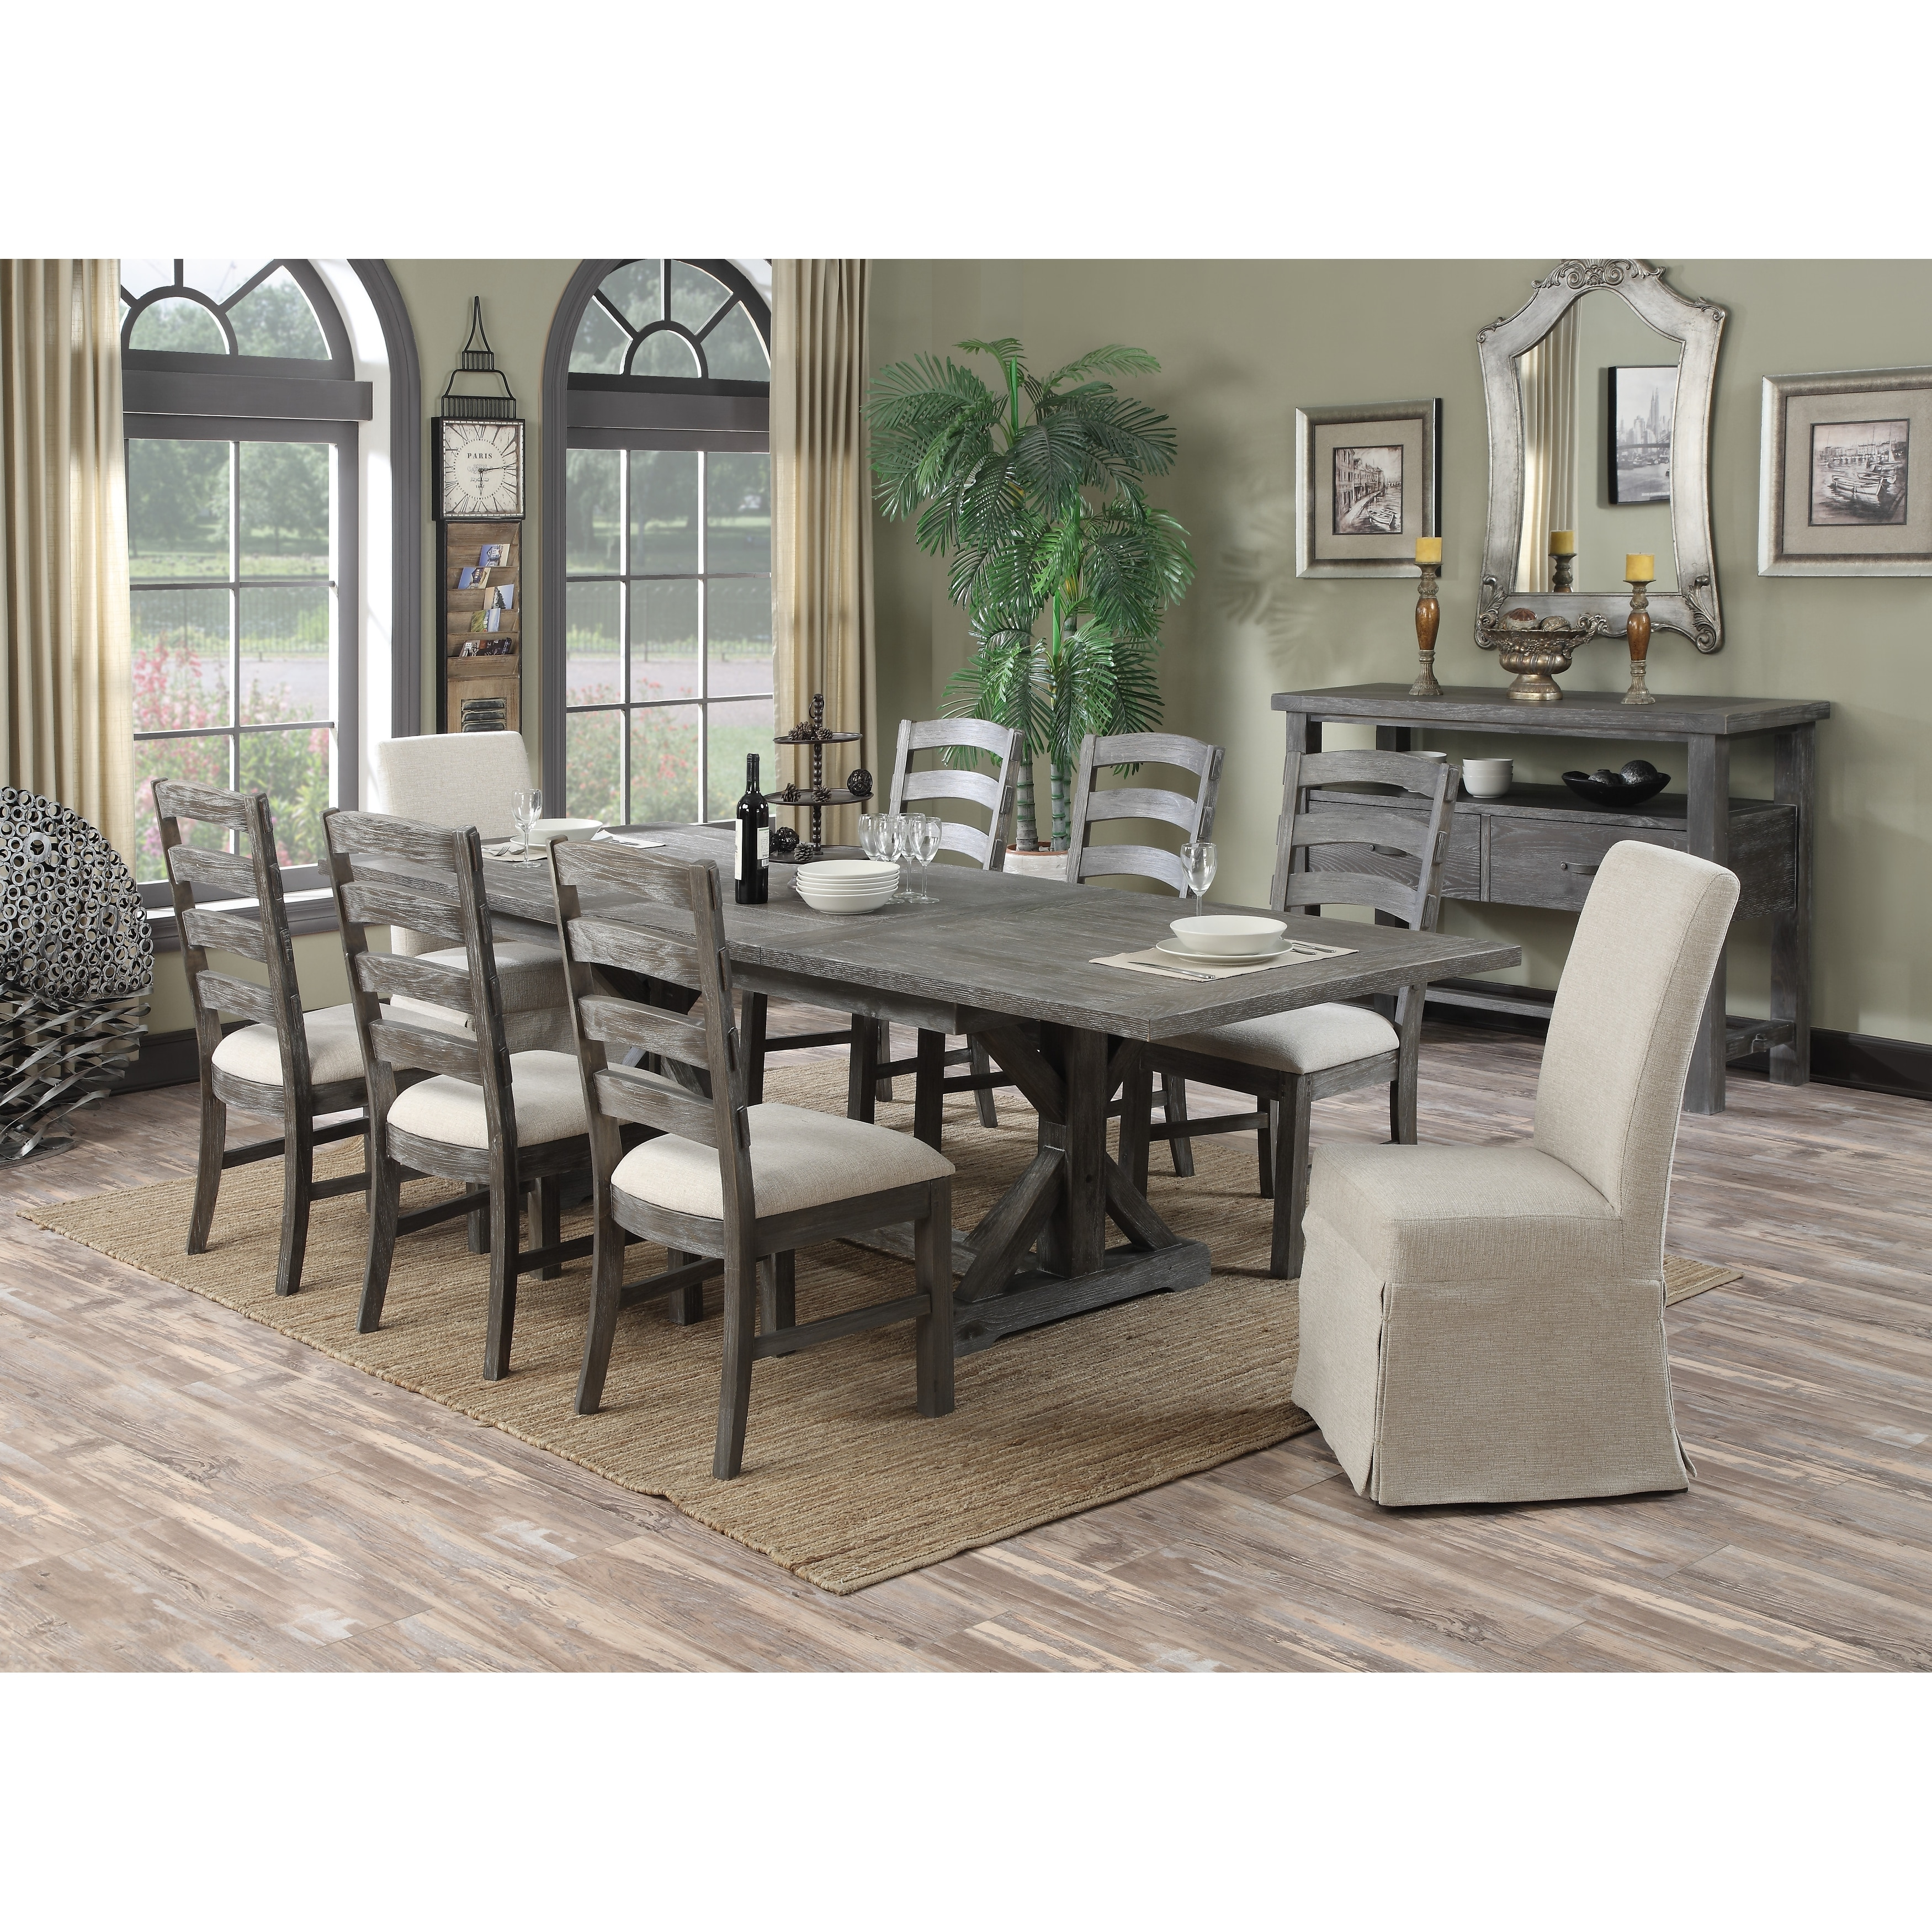 The Gray Barn Snowshill 9 Piece Rustic Dining Room Set Overstock 31635597